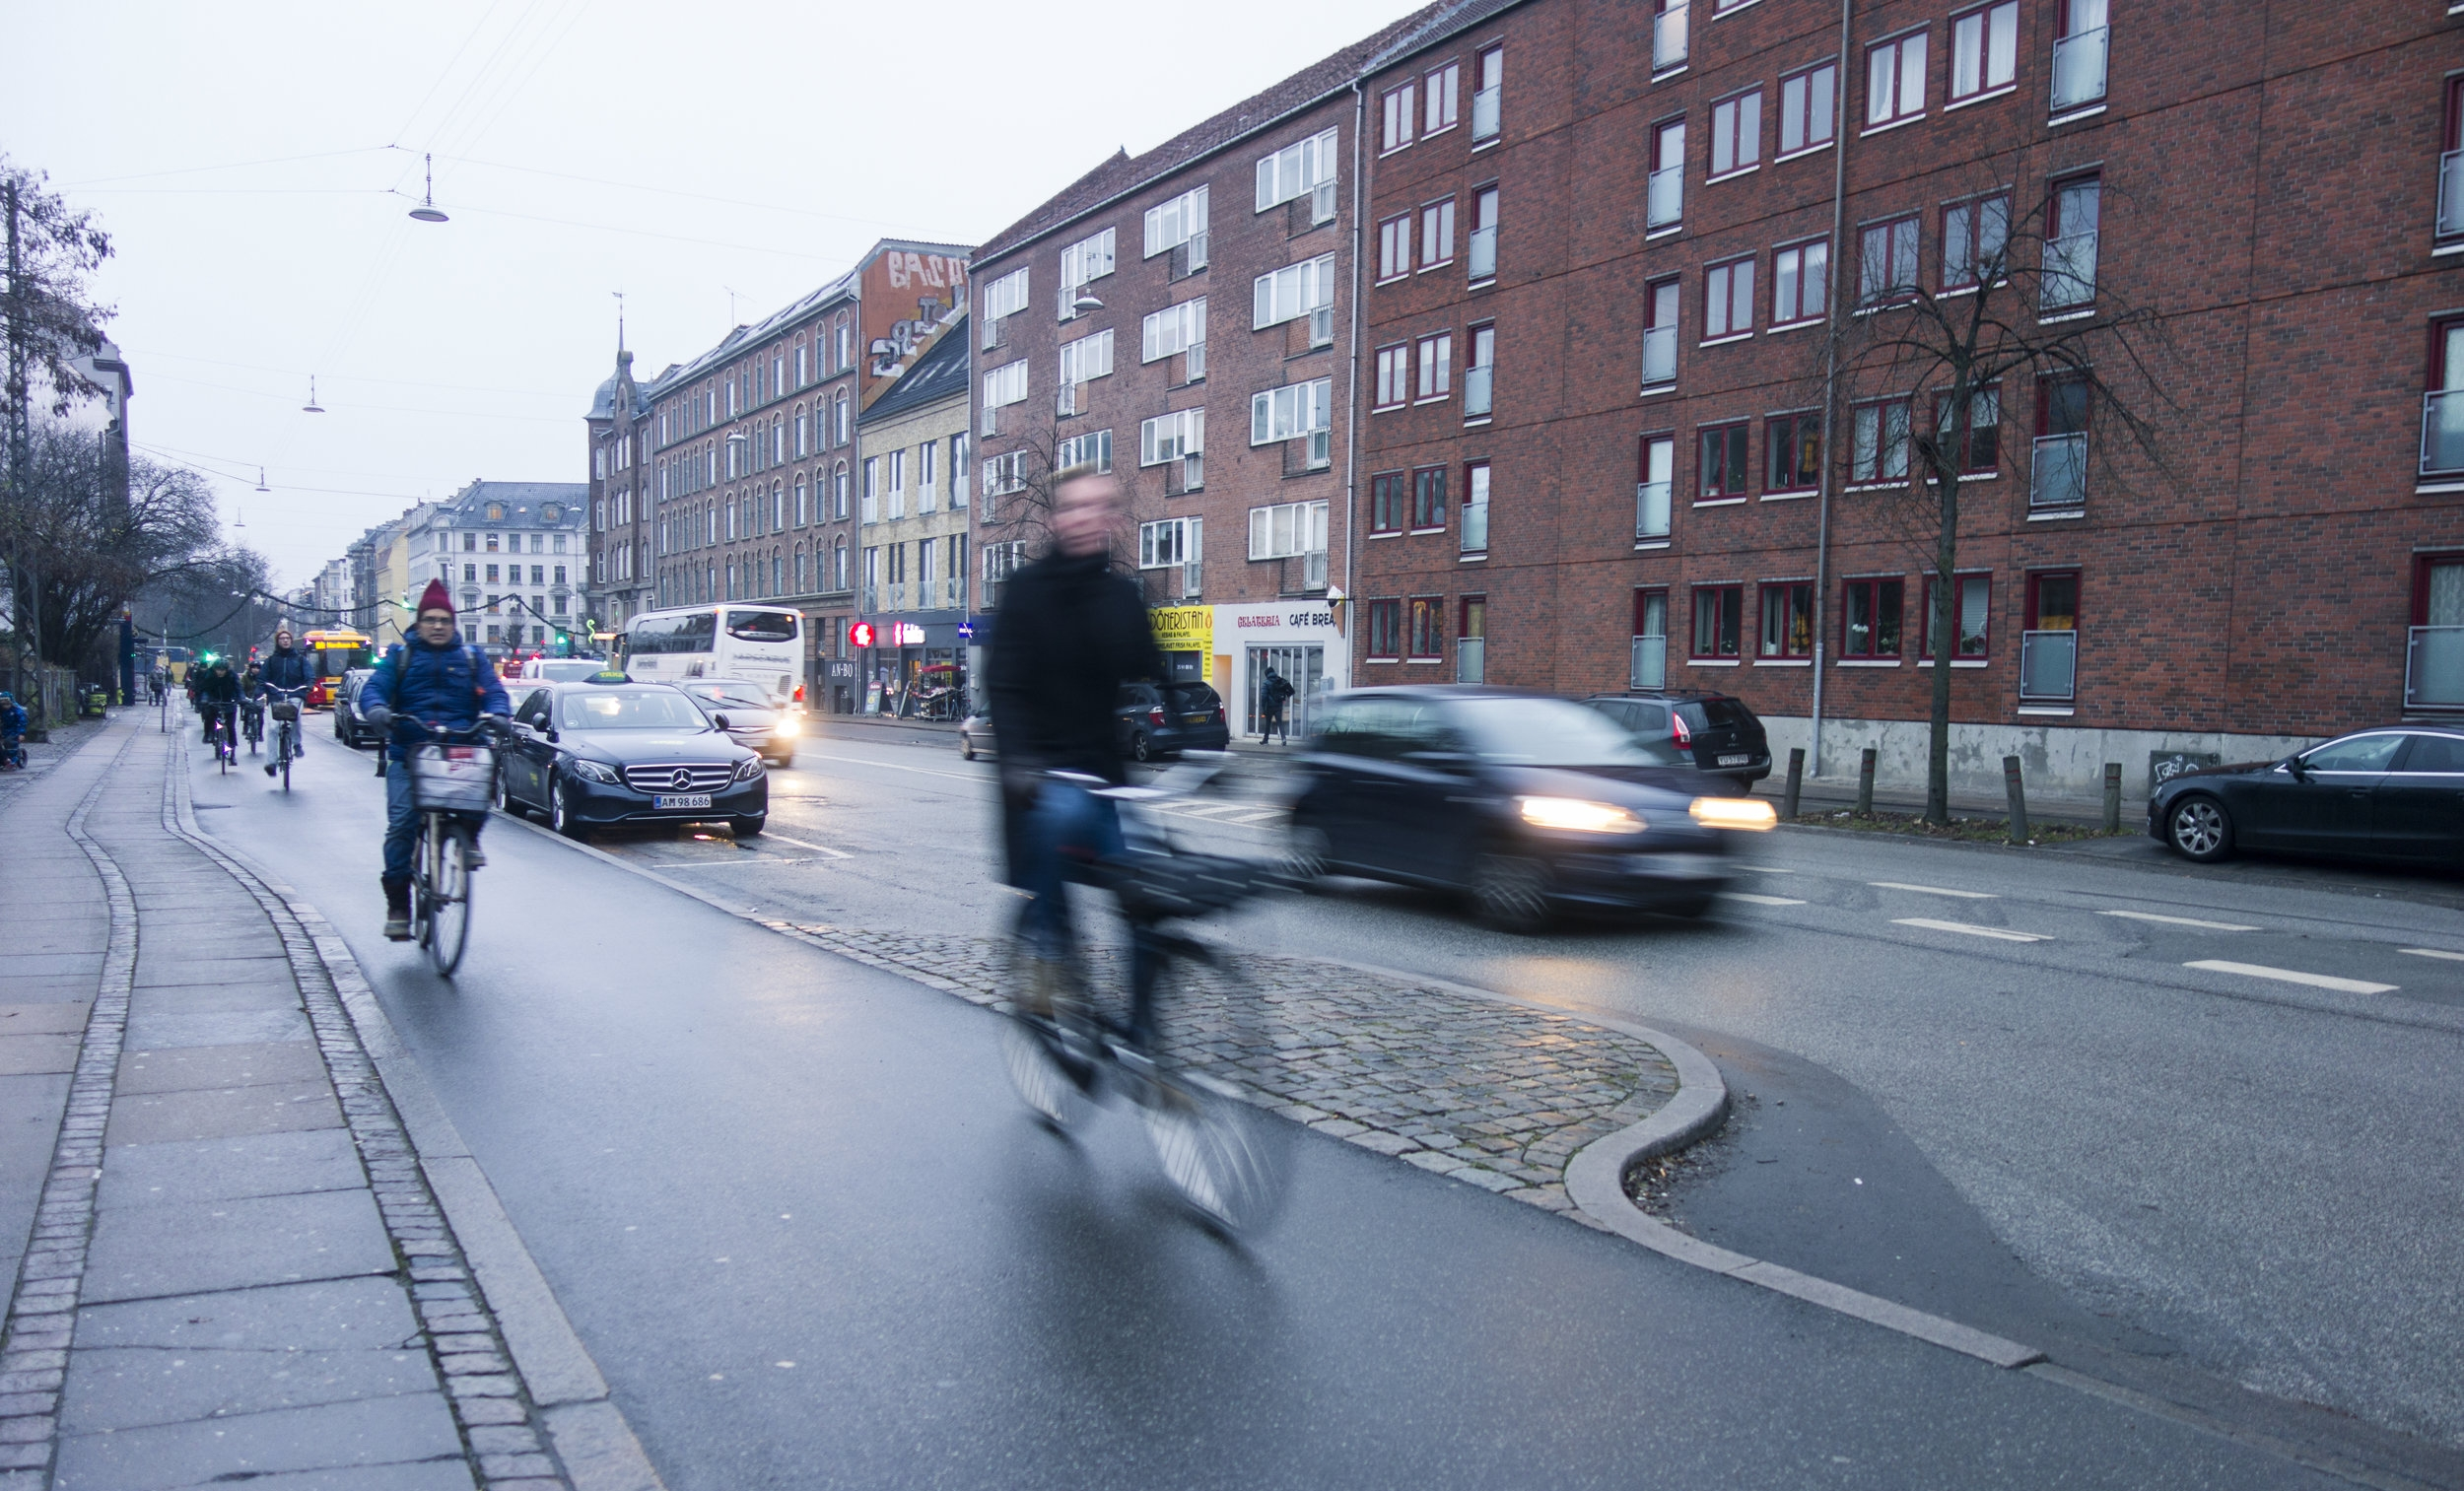 Communicating Change - The importance of talking about bicycles as an everyday mode of transportation rather than a subculture.